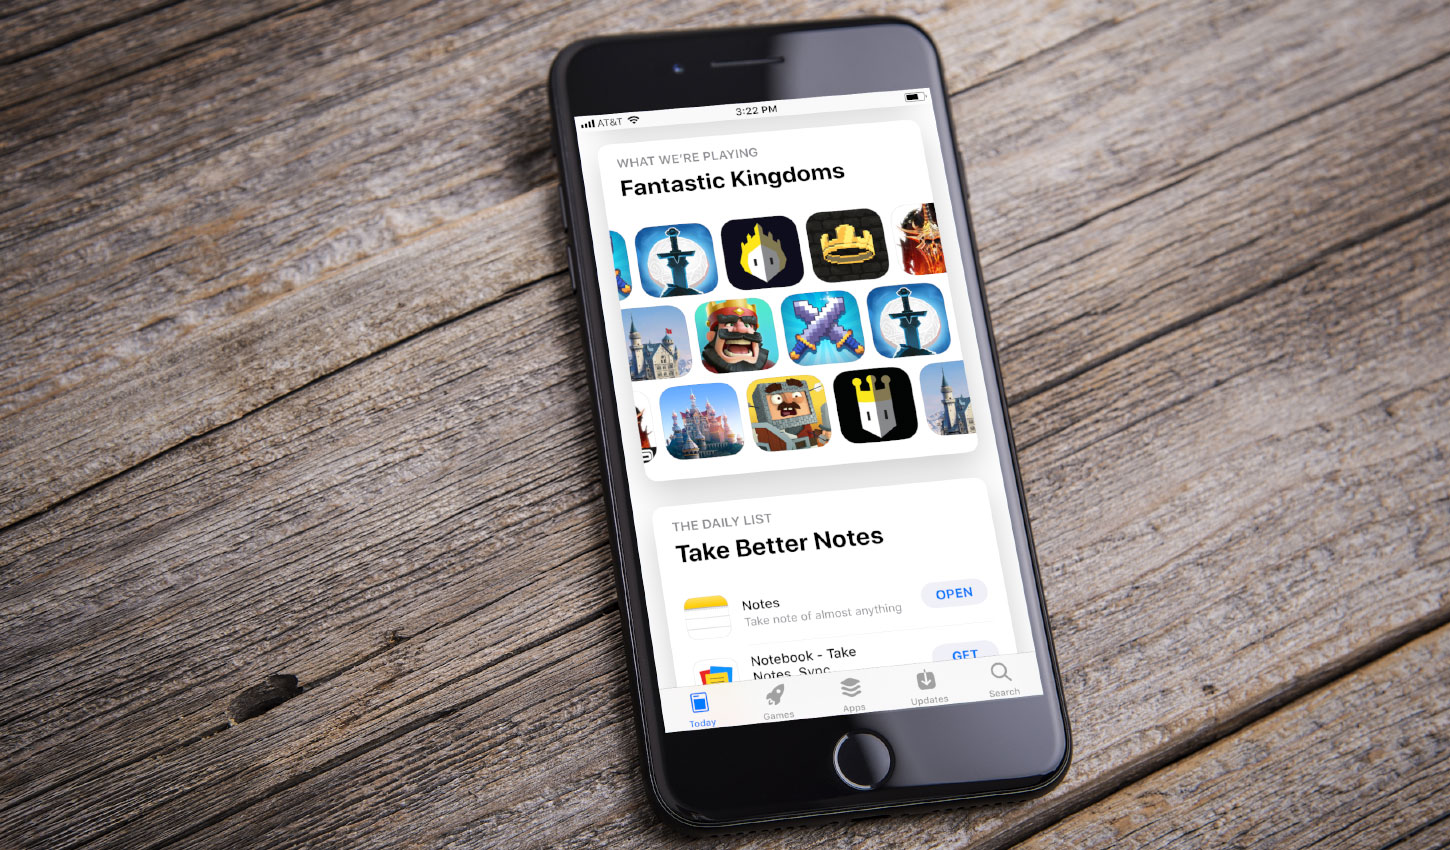 iOS 11s new App Store boosts downloads by 800 for featured apps